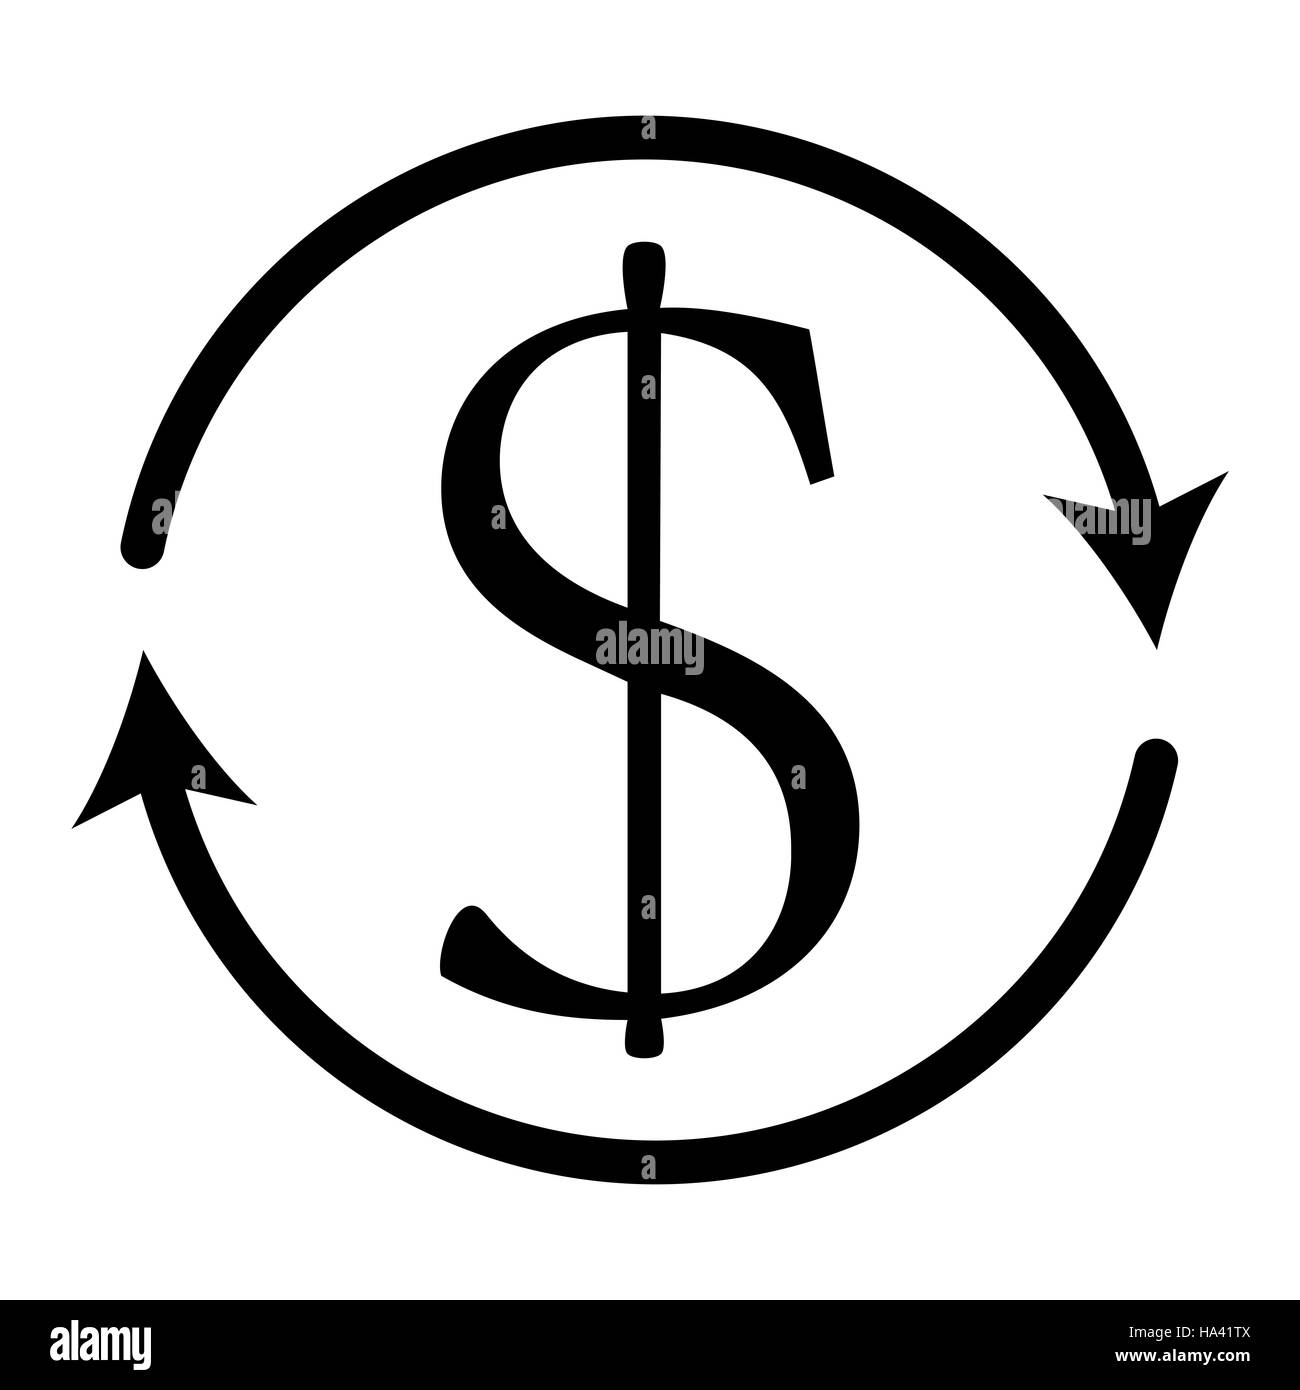 Dollar currency exchange money symbol arond arrow finance and dollar currency exchange money symbol arond arrow finance and business vector illustration biocorpaavc